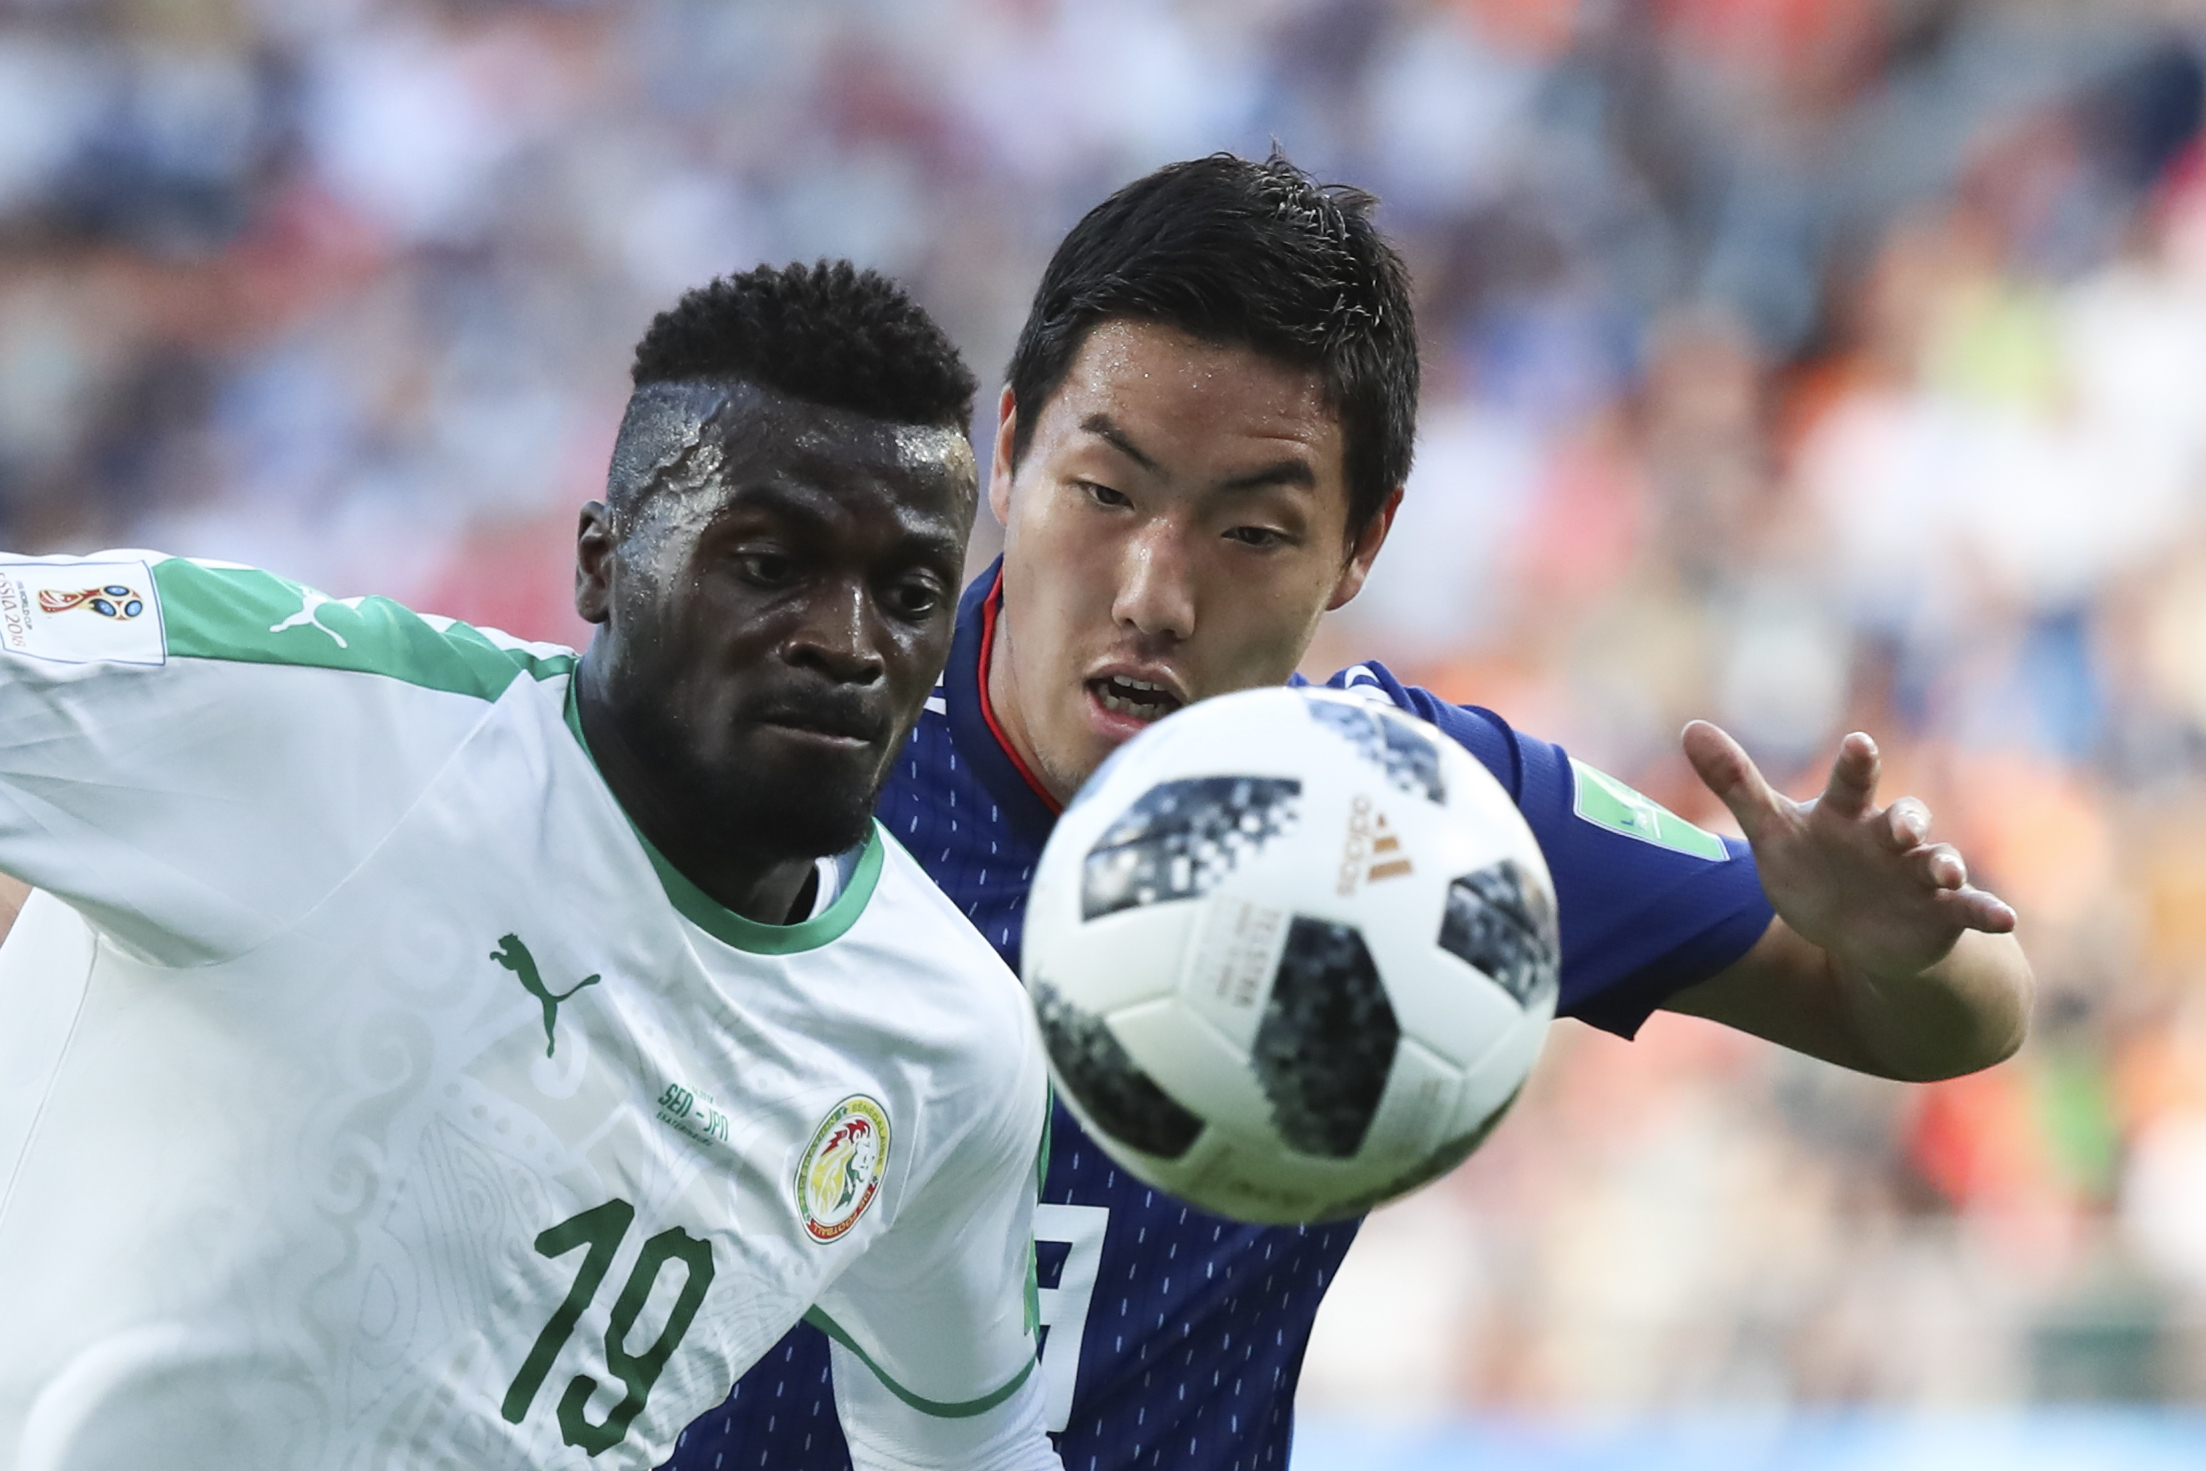 <div class='meta'><div class='origin-logo' data-origin='none'></div><span class='caption-text' data-credit='Eugene Hoshiko/AP Photo'>Senegal's Mbaye Niang, left, and Japan's Gen Shoji challenge for the ball during the group H match at the Yekaterinburg Arena in Yekaterinburg, Russia, Sunday, June 24, 2018.</span></div>